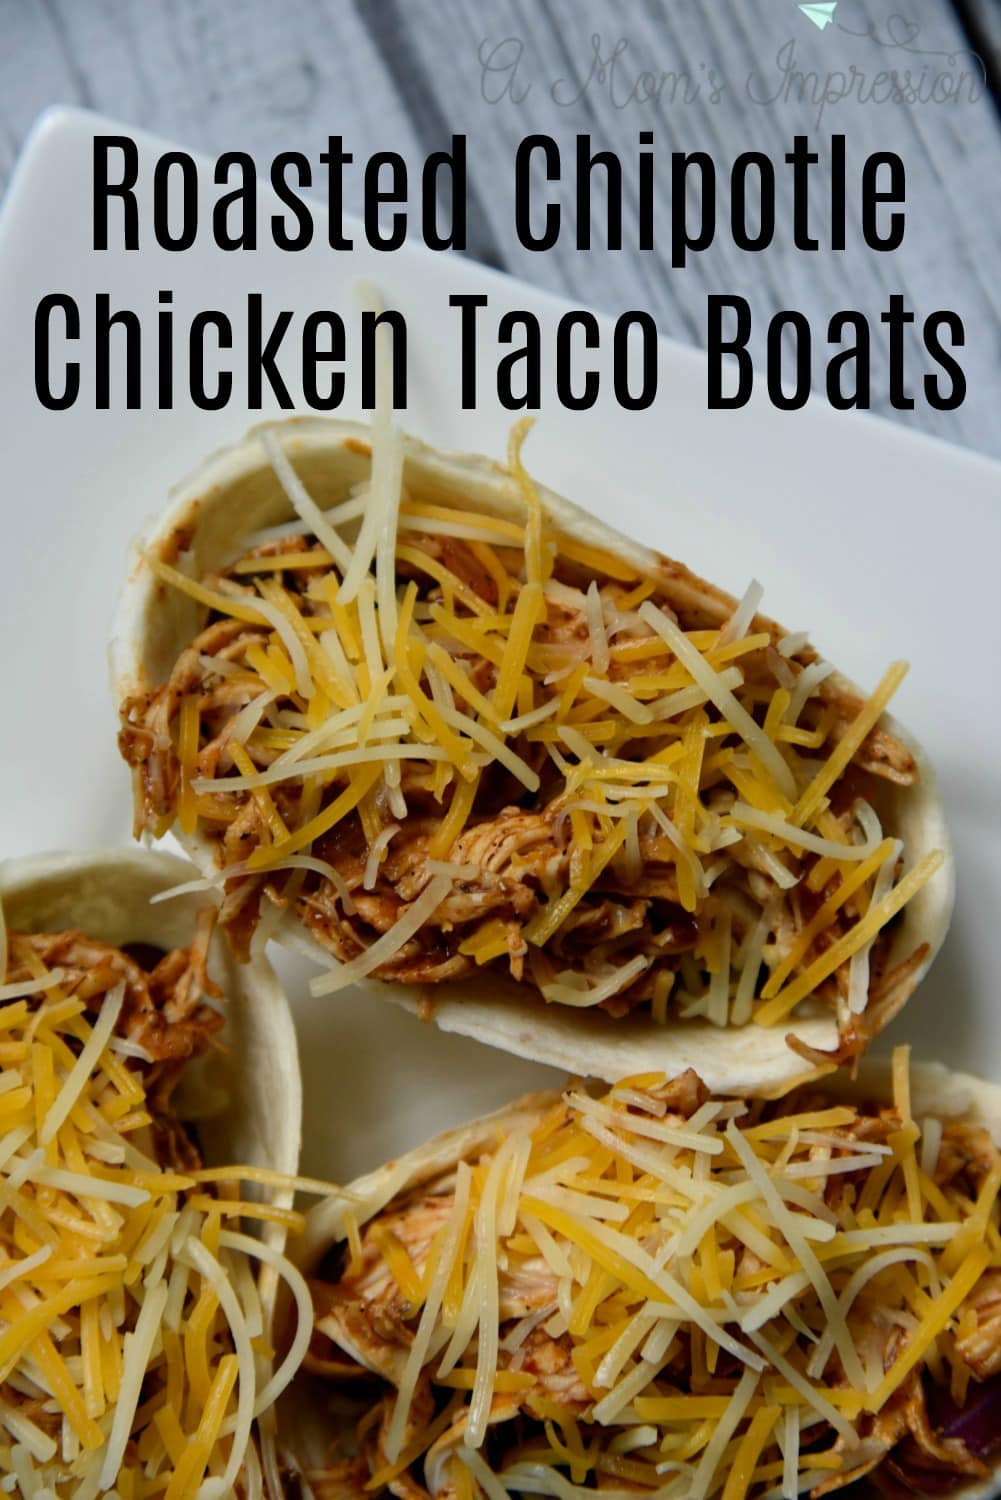 Roasted Chipotle Chicken Taco Boat